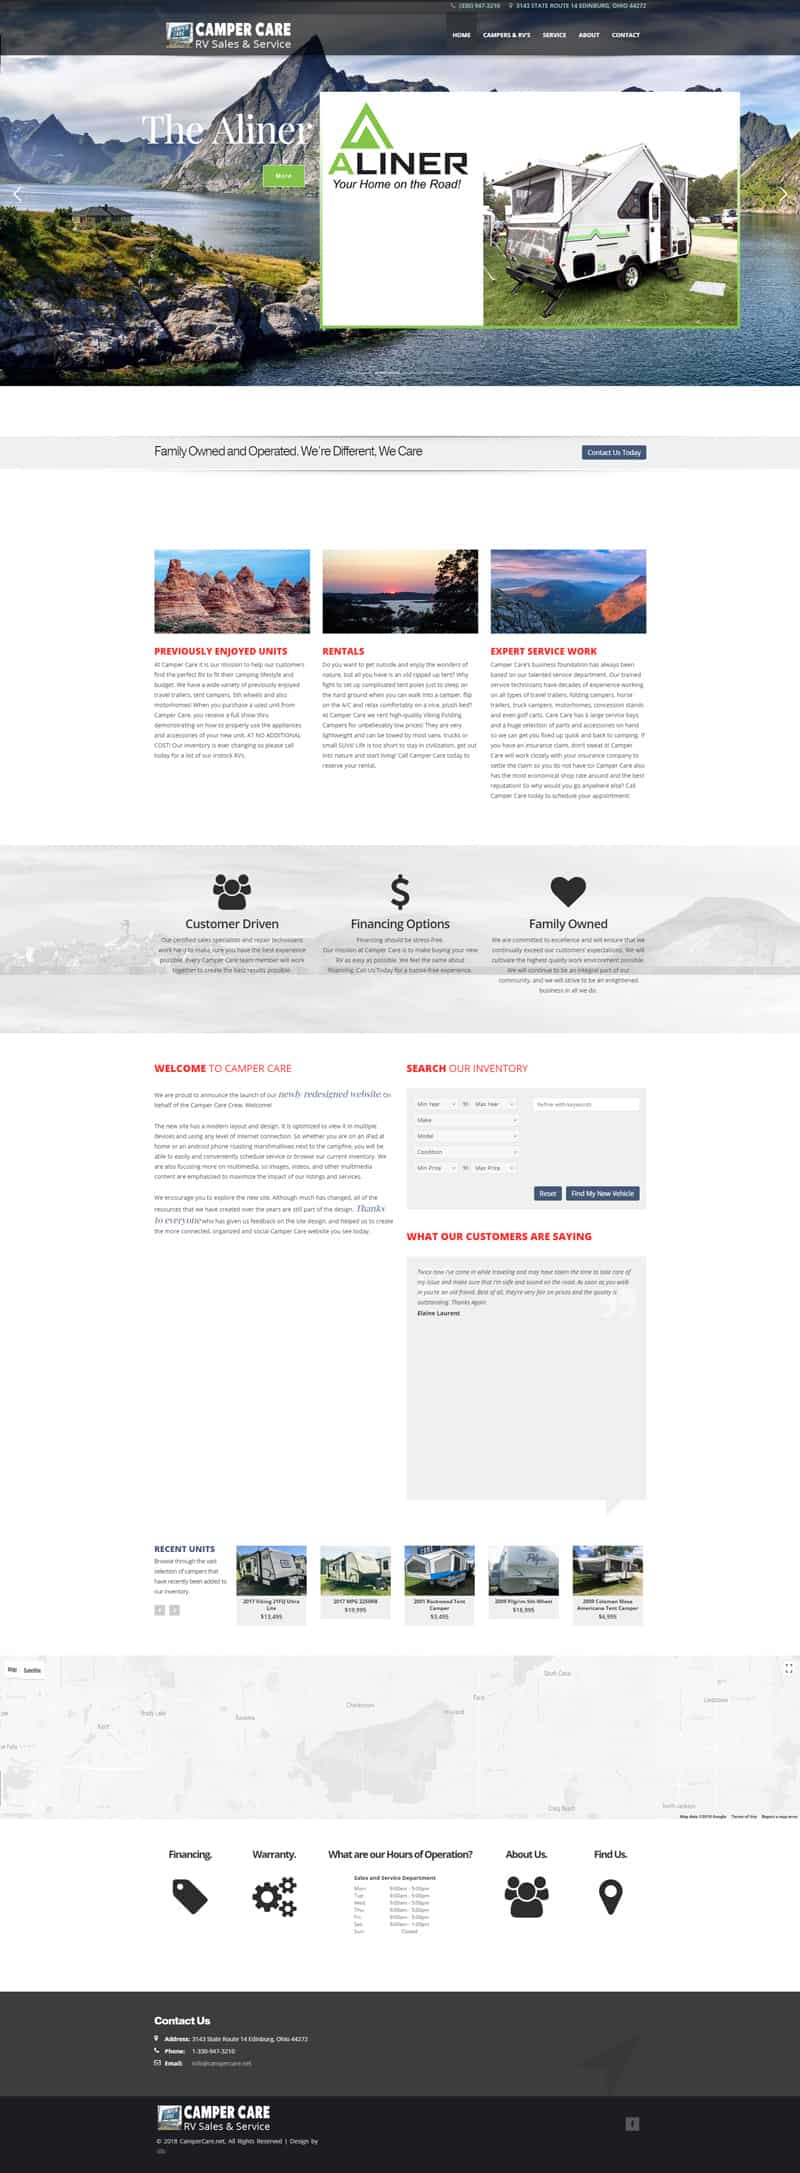 camper care web redesign by dlb web media